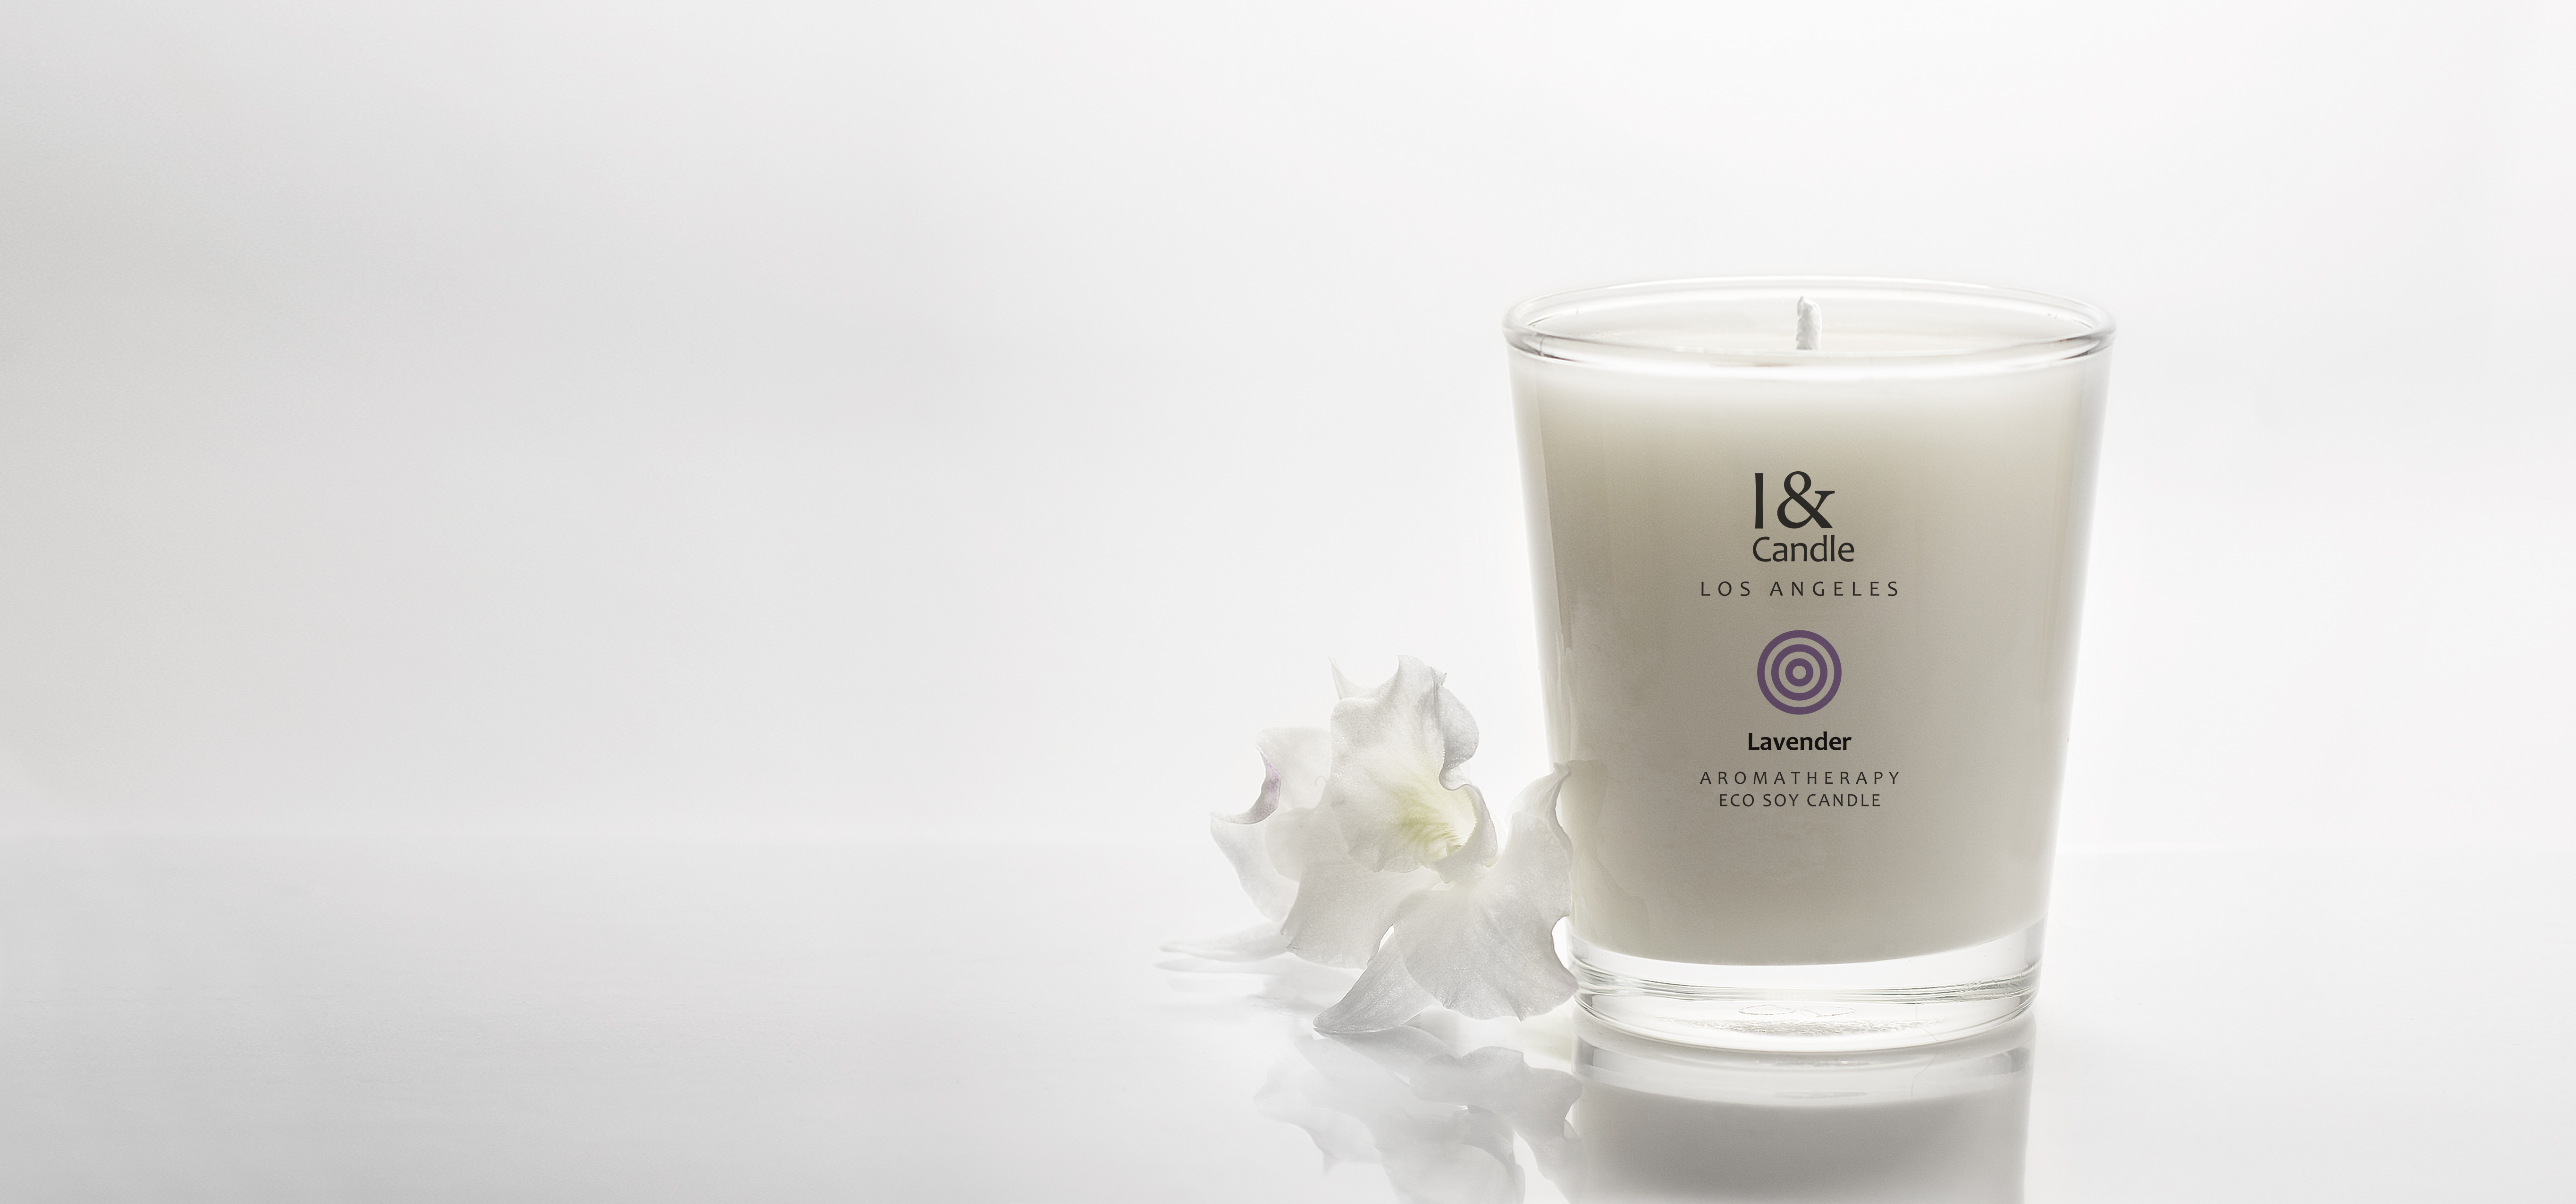 VIOIS | All Natural | Fragrances for Bath, Body and Home